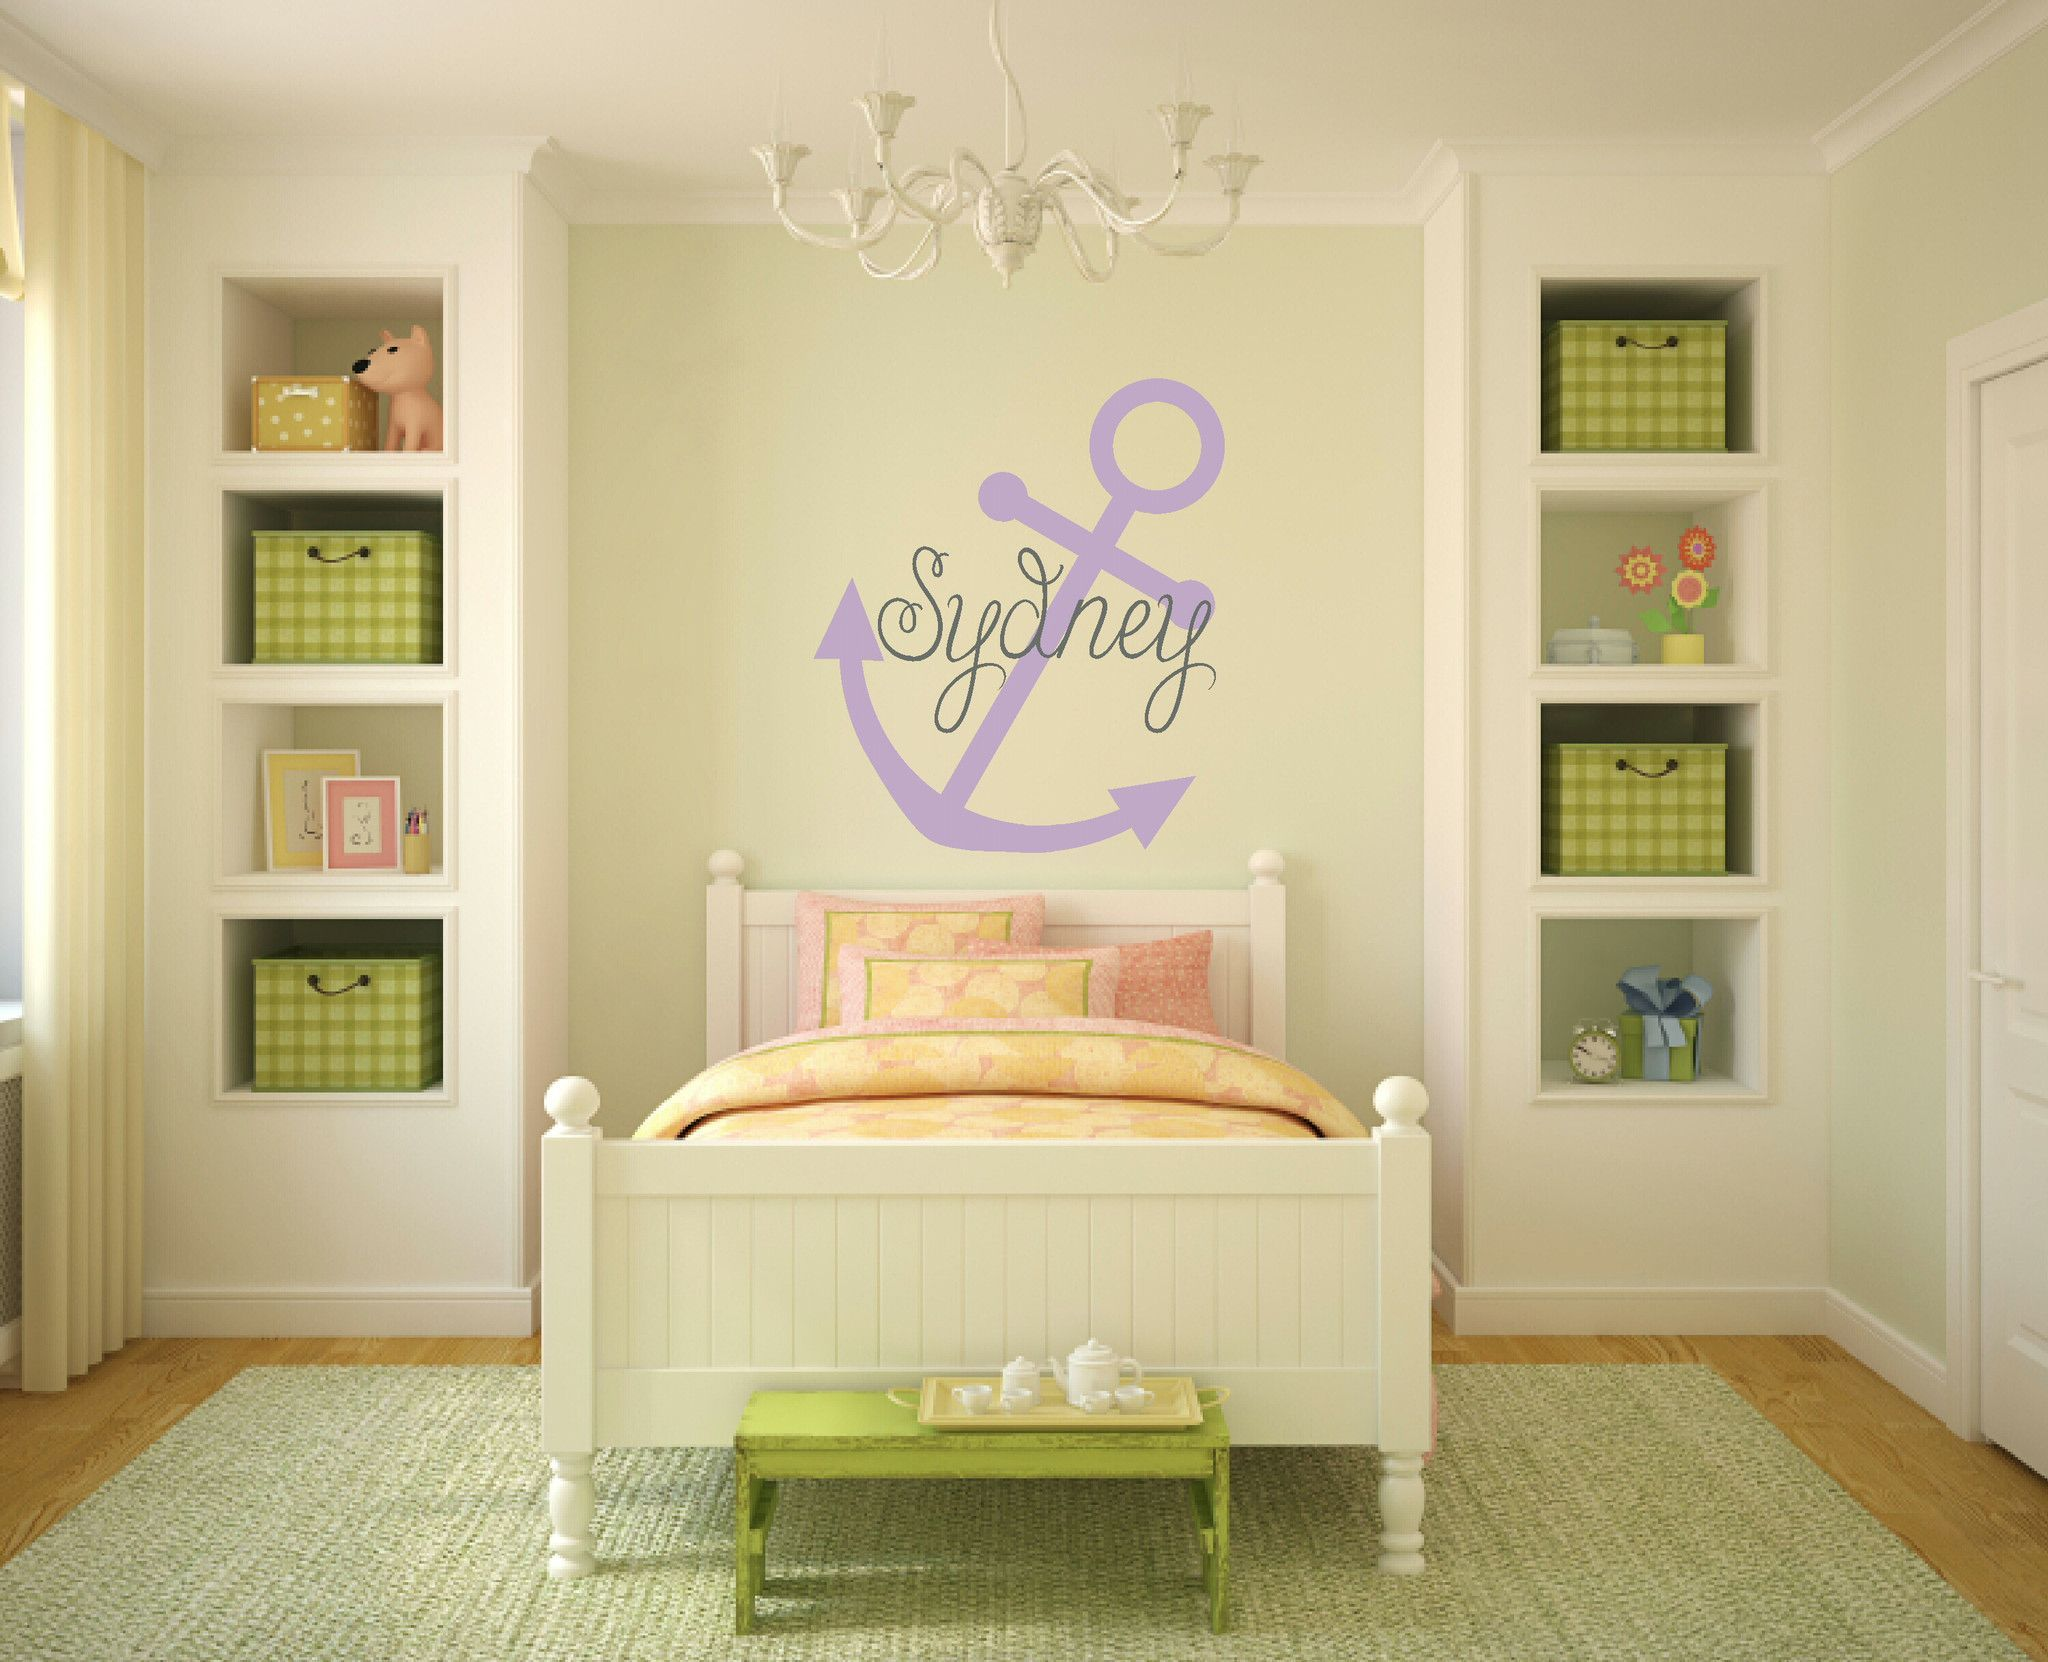 Anchor Wall Decal With Name Nautical Bedroom Decor For Kids | Wall ...